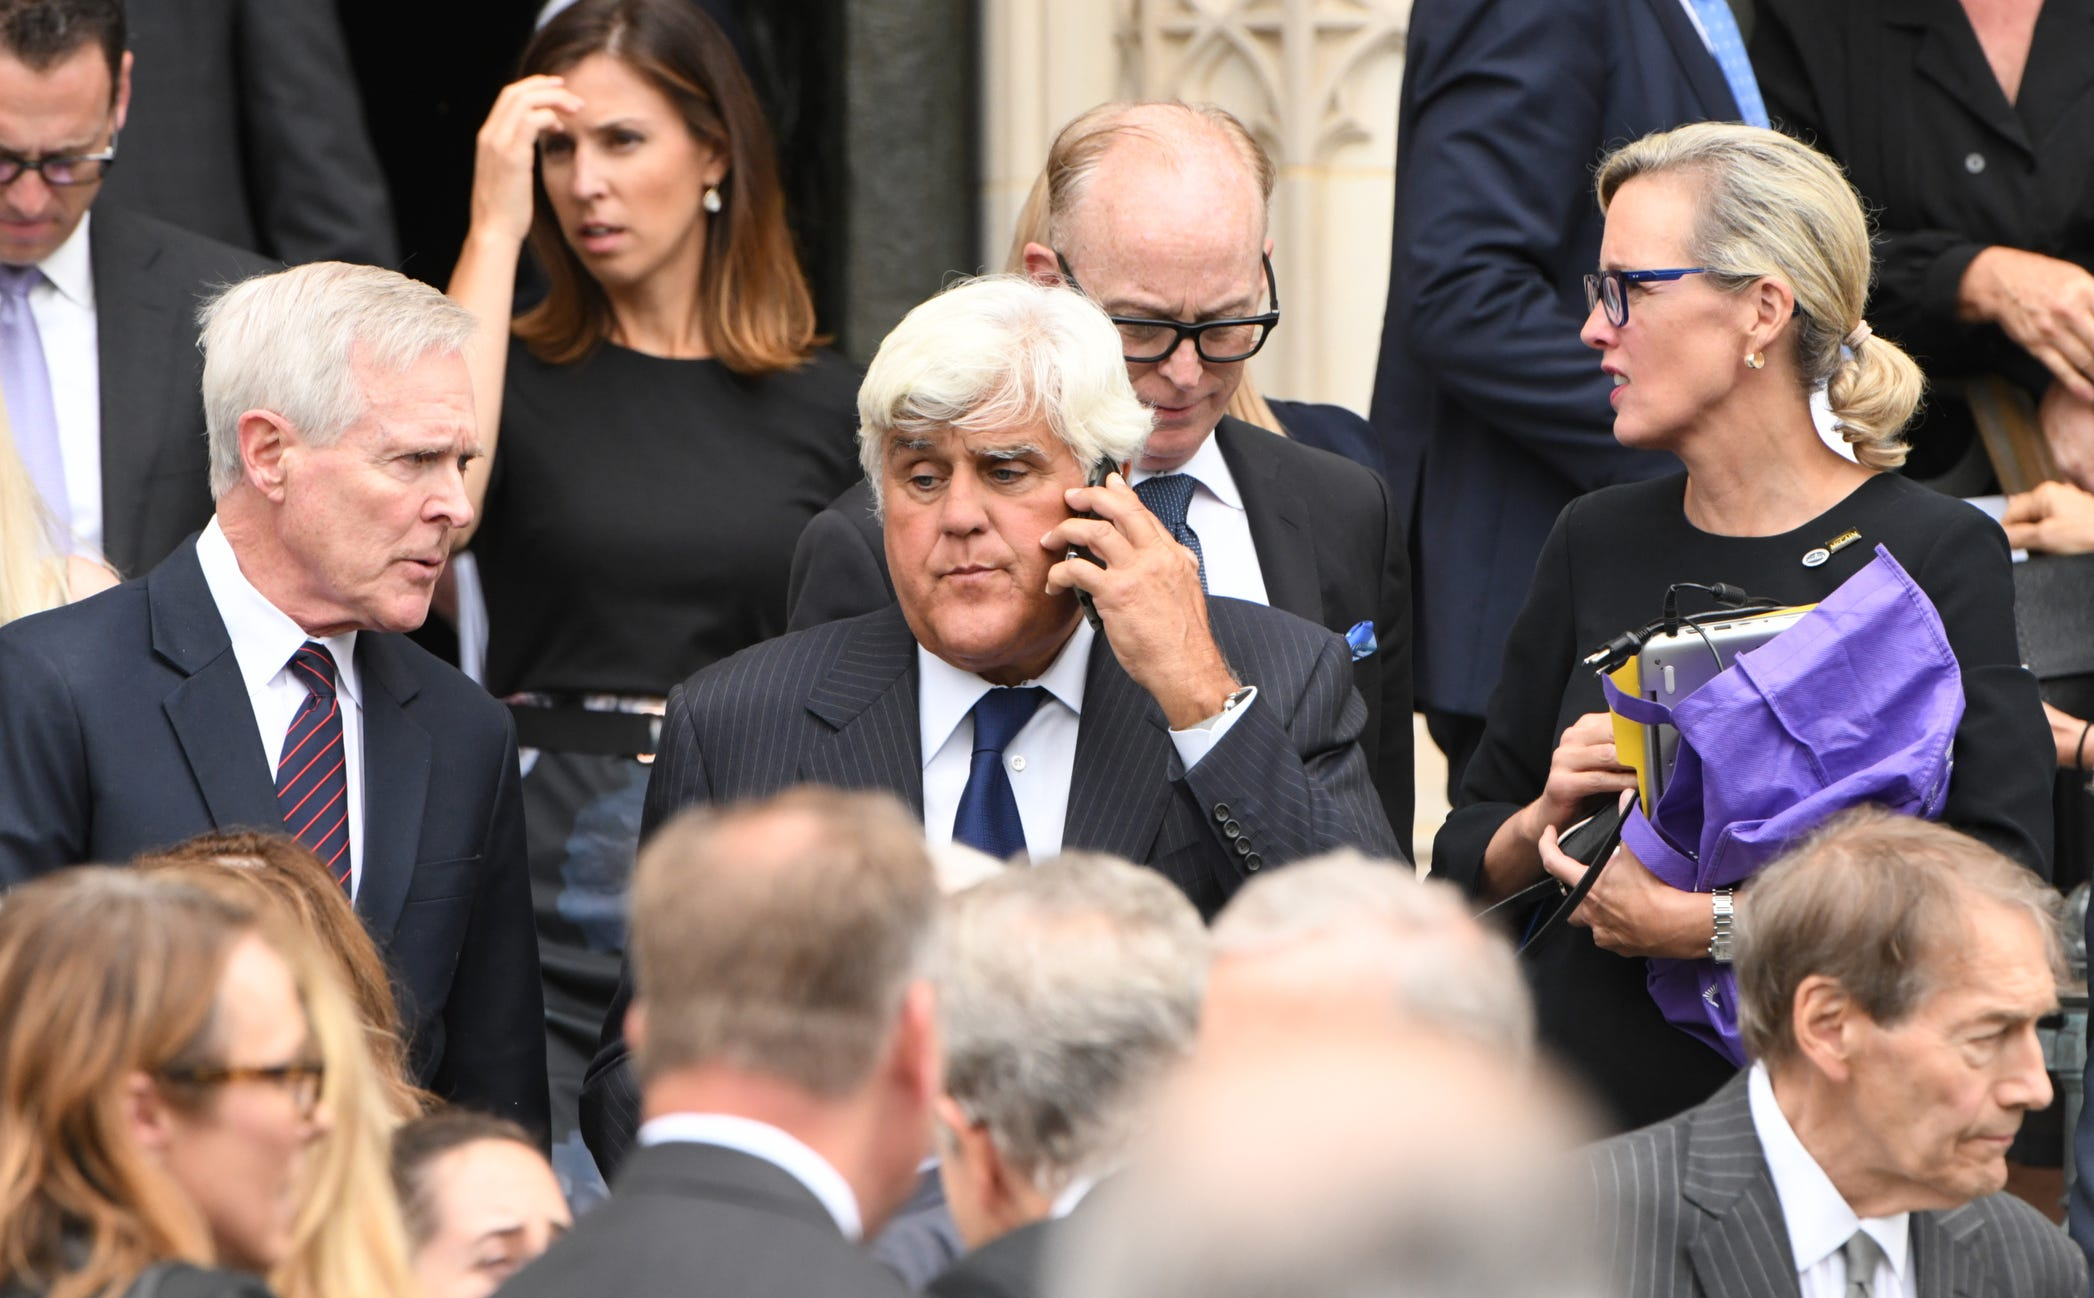 Jay Leno makes a phone call as he leaves the memorial service for John McCain.